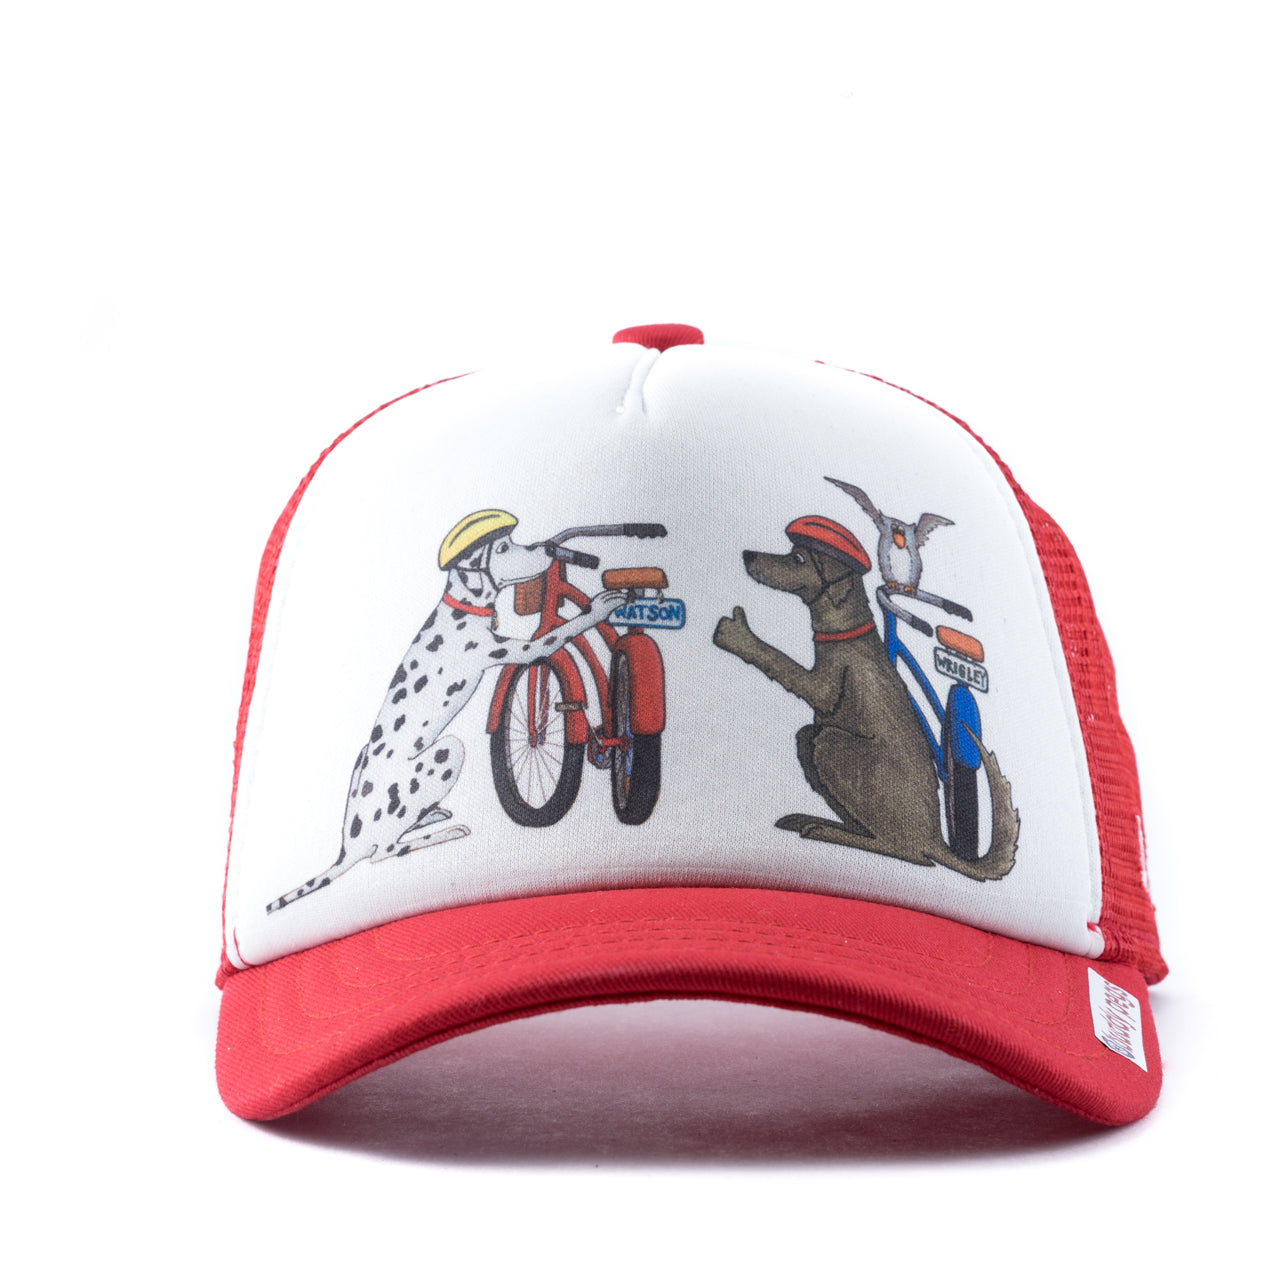 ... Keep Your Thumbs Up The Rubber Side Down Trucker Hat check out 20695  da068 ... bf6523d5dbca